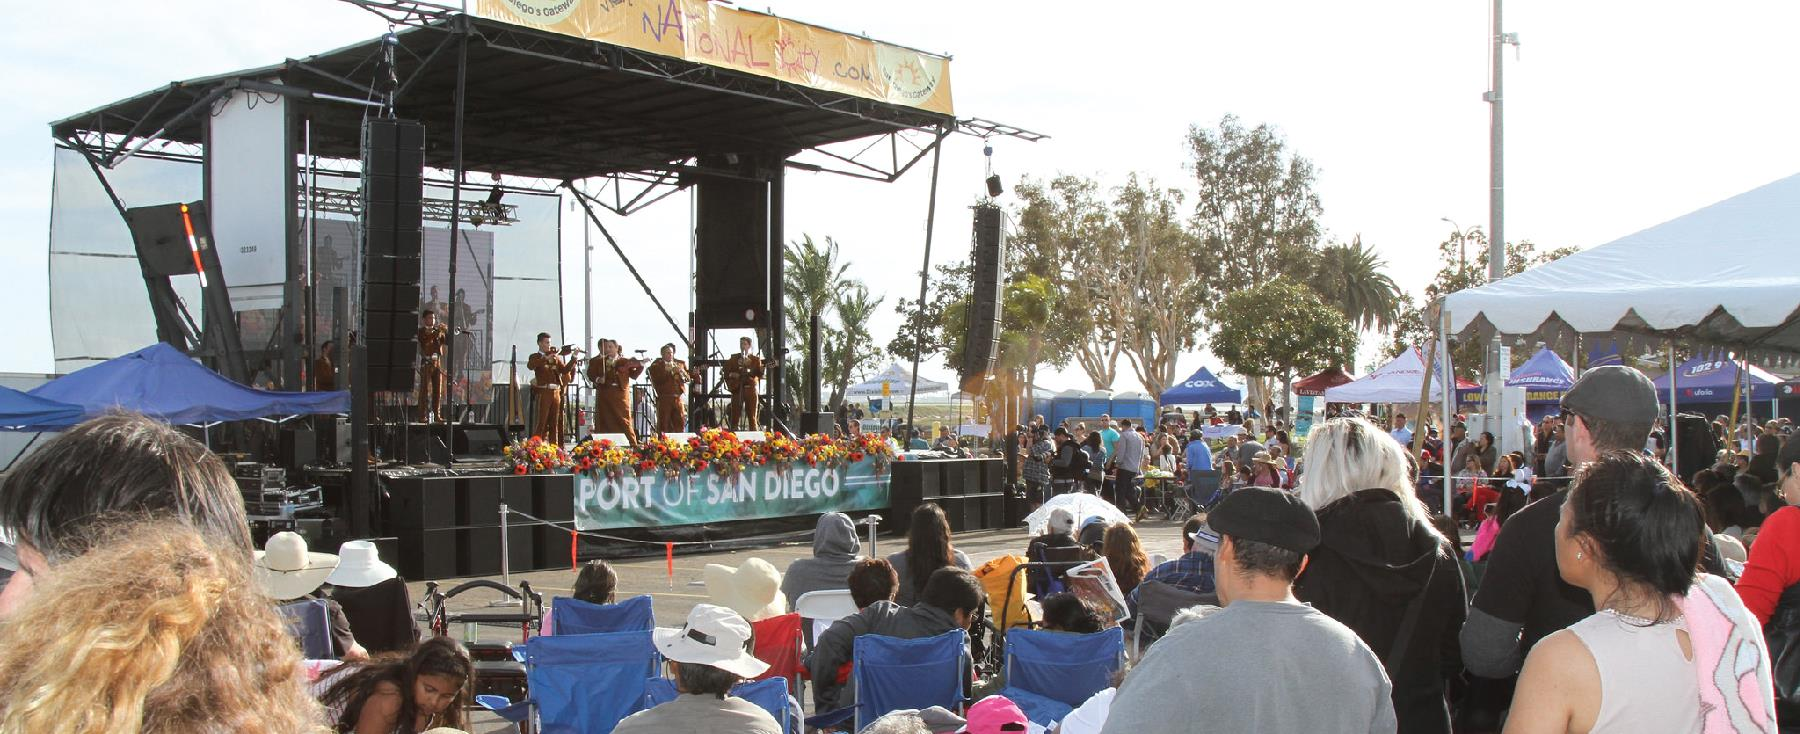 Annual International Mariachi Festival